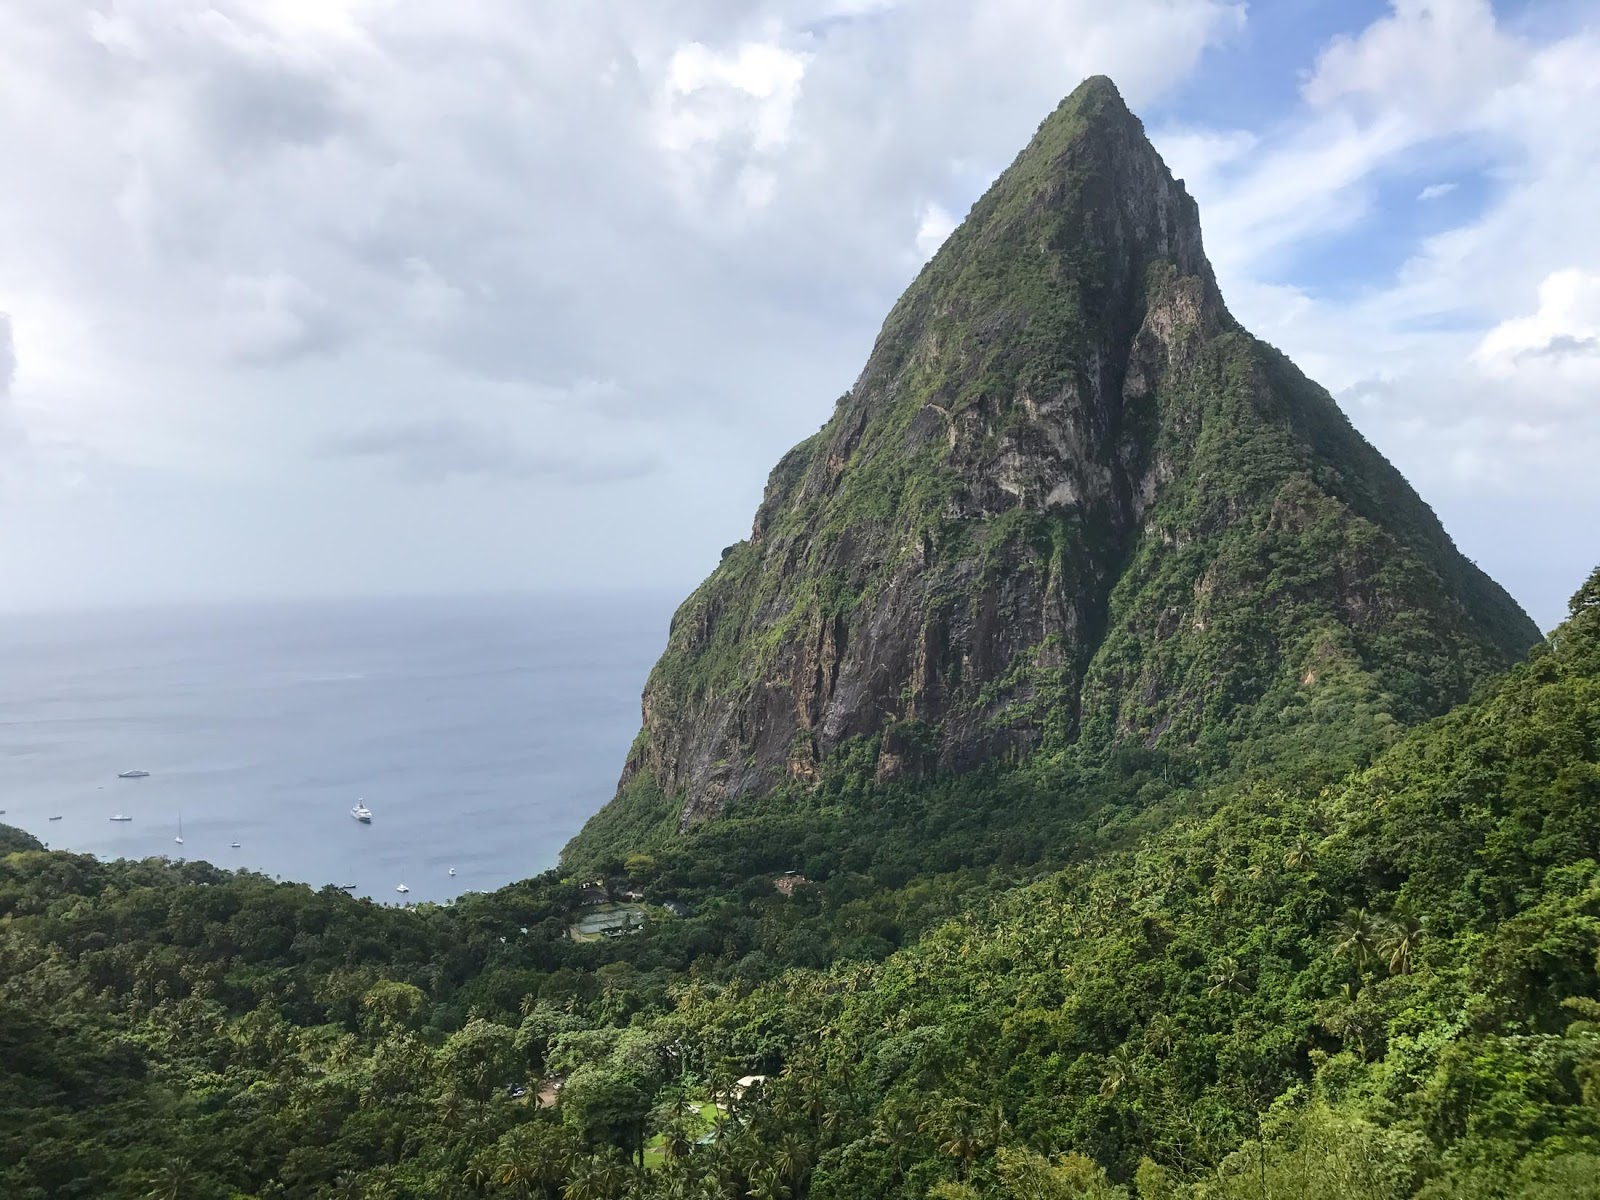 Petit Piton in St. Lucia